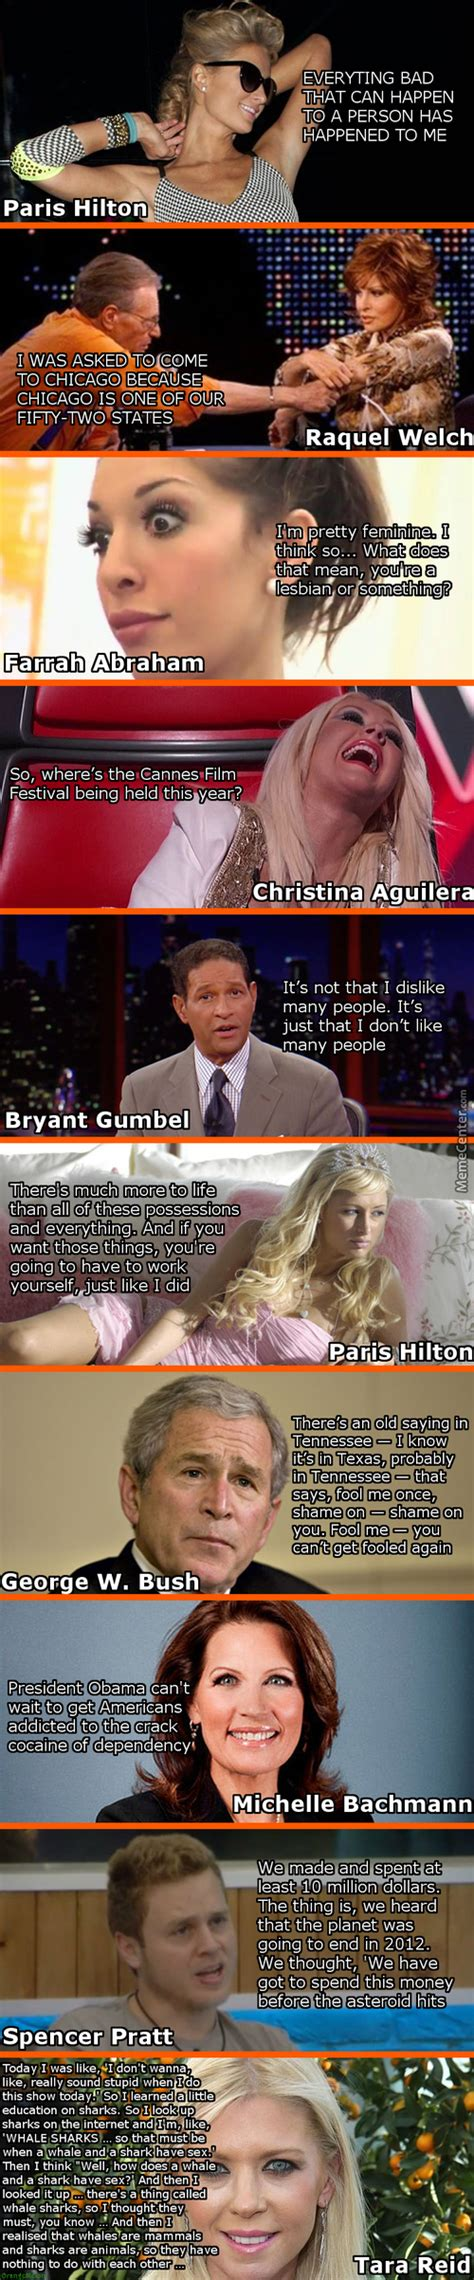 Christina Aguilera Meme - christina aguilera memes best collection of funny